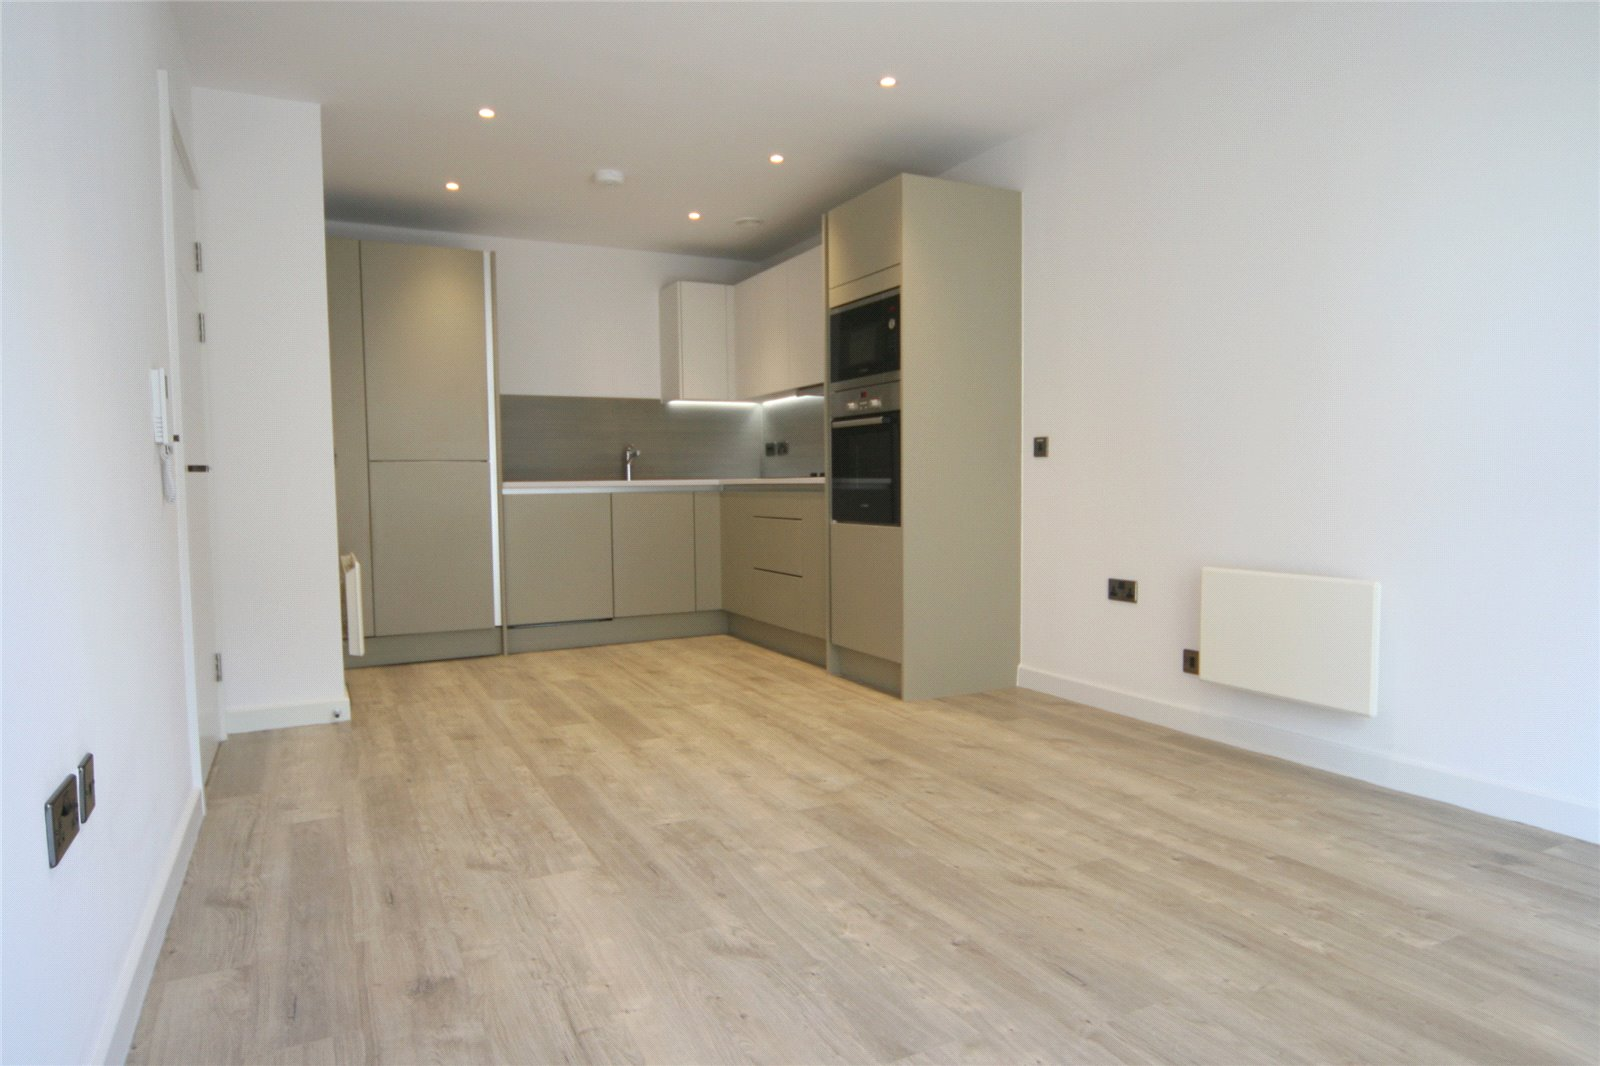 Whitegates York 1 Bedroom Flat To Rent In Leetham House Palmer Street York Yo1 Whitegates